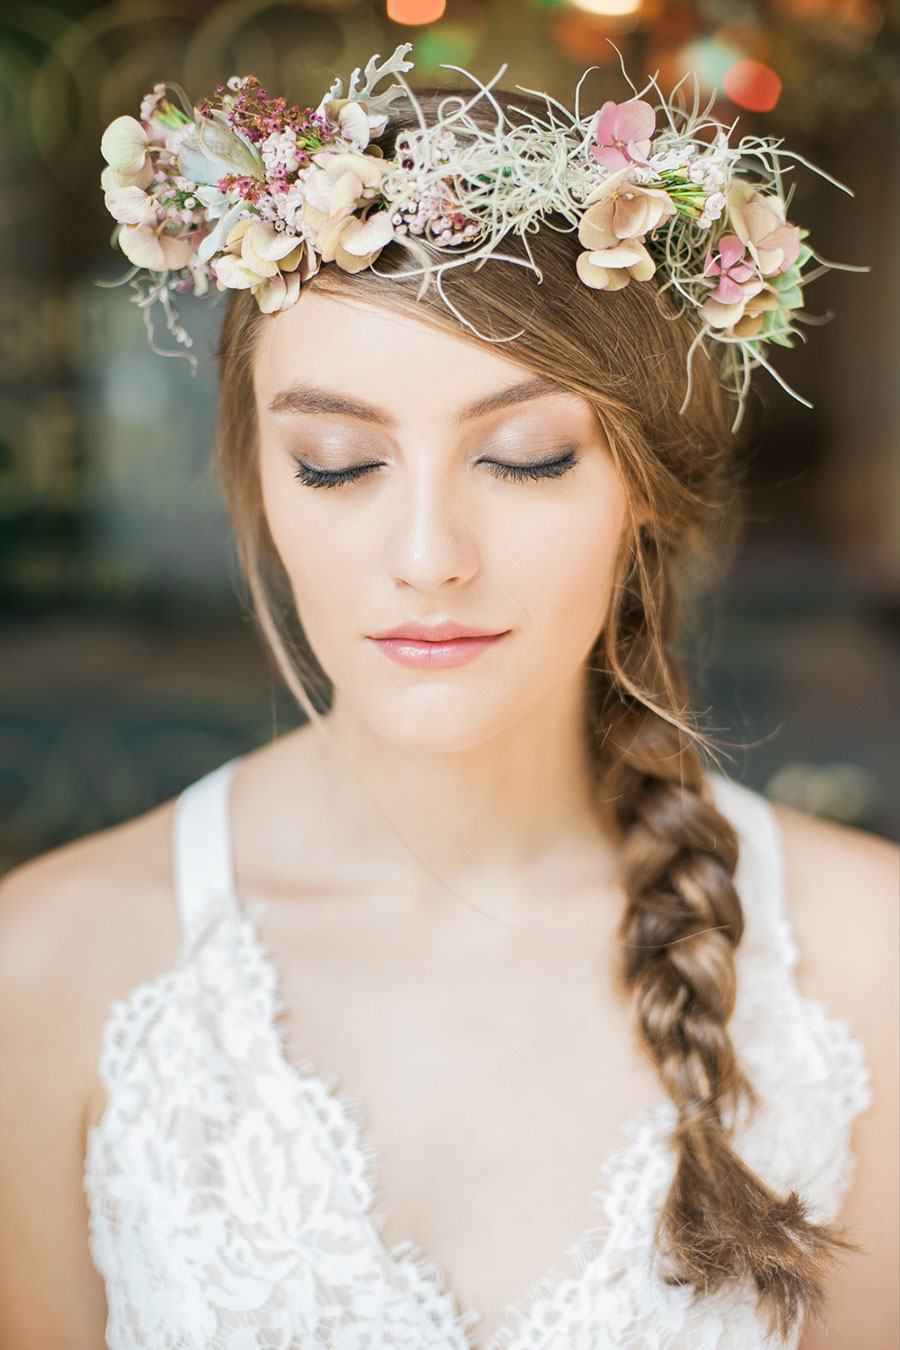 The wedding scoop floral crown by wonderland for detailed planners photography by brody tan via diy floral crown beauty shoot izmirmasajfo